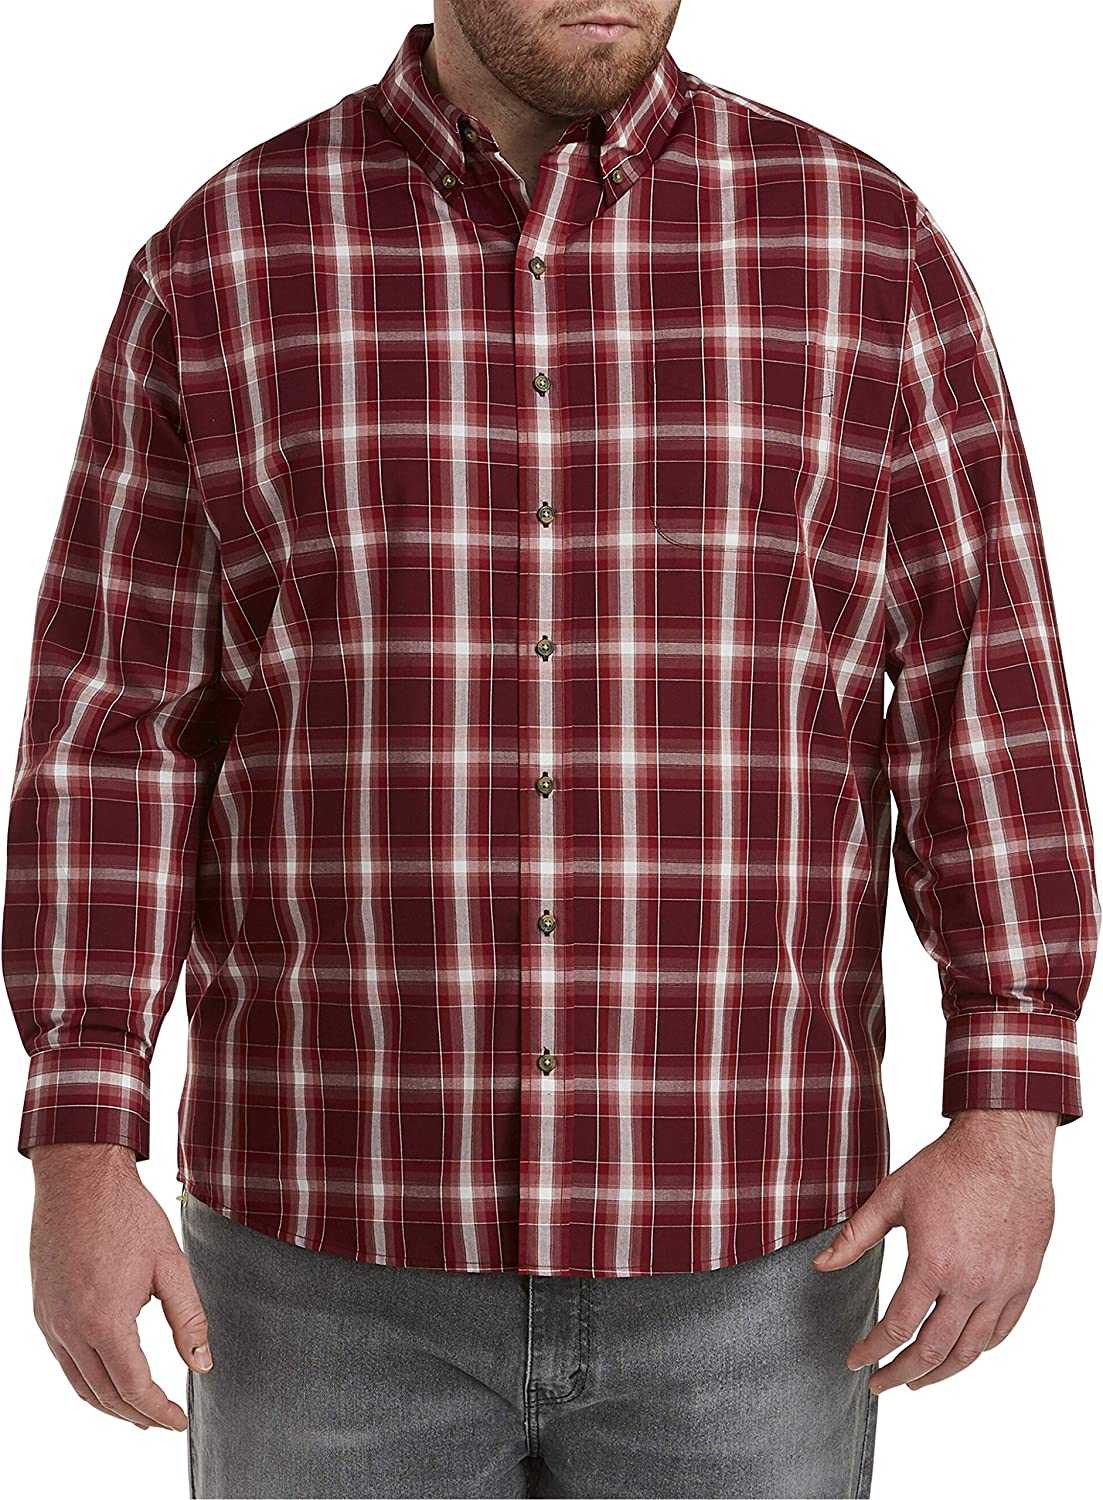 Harbor Bay by DXL Big and Tall Easy-Care Medium Plaid Sport Shirt, Wine White Multi